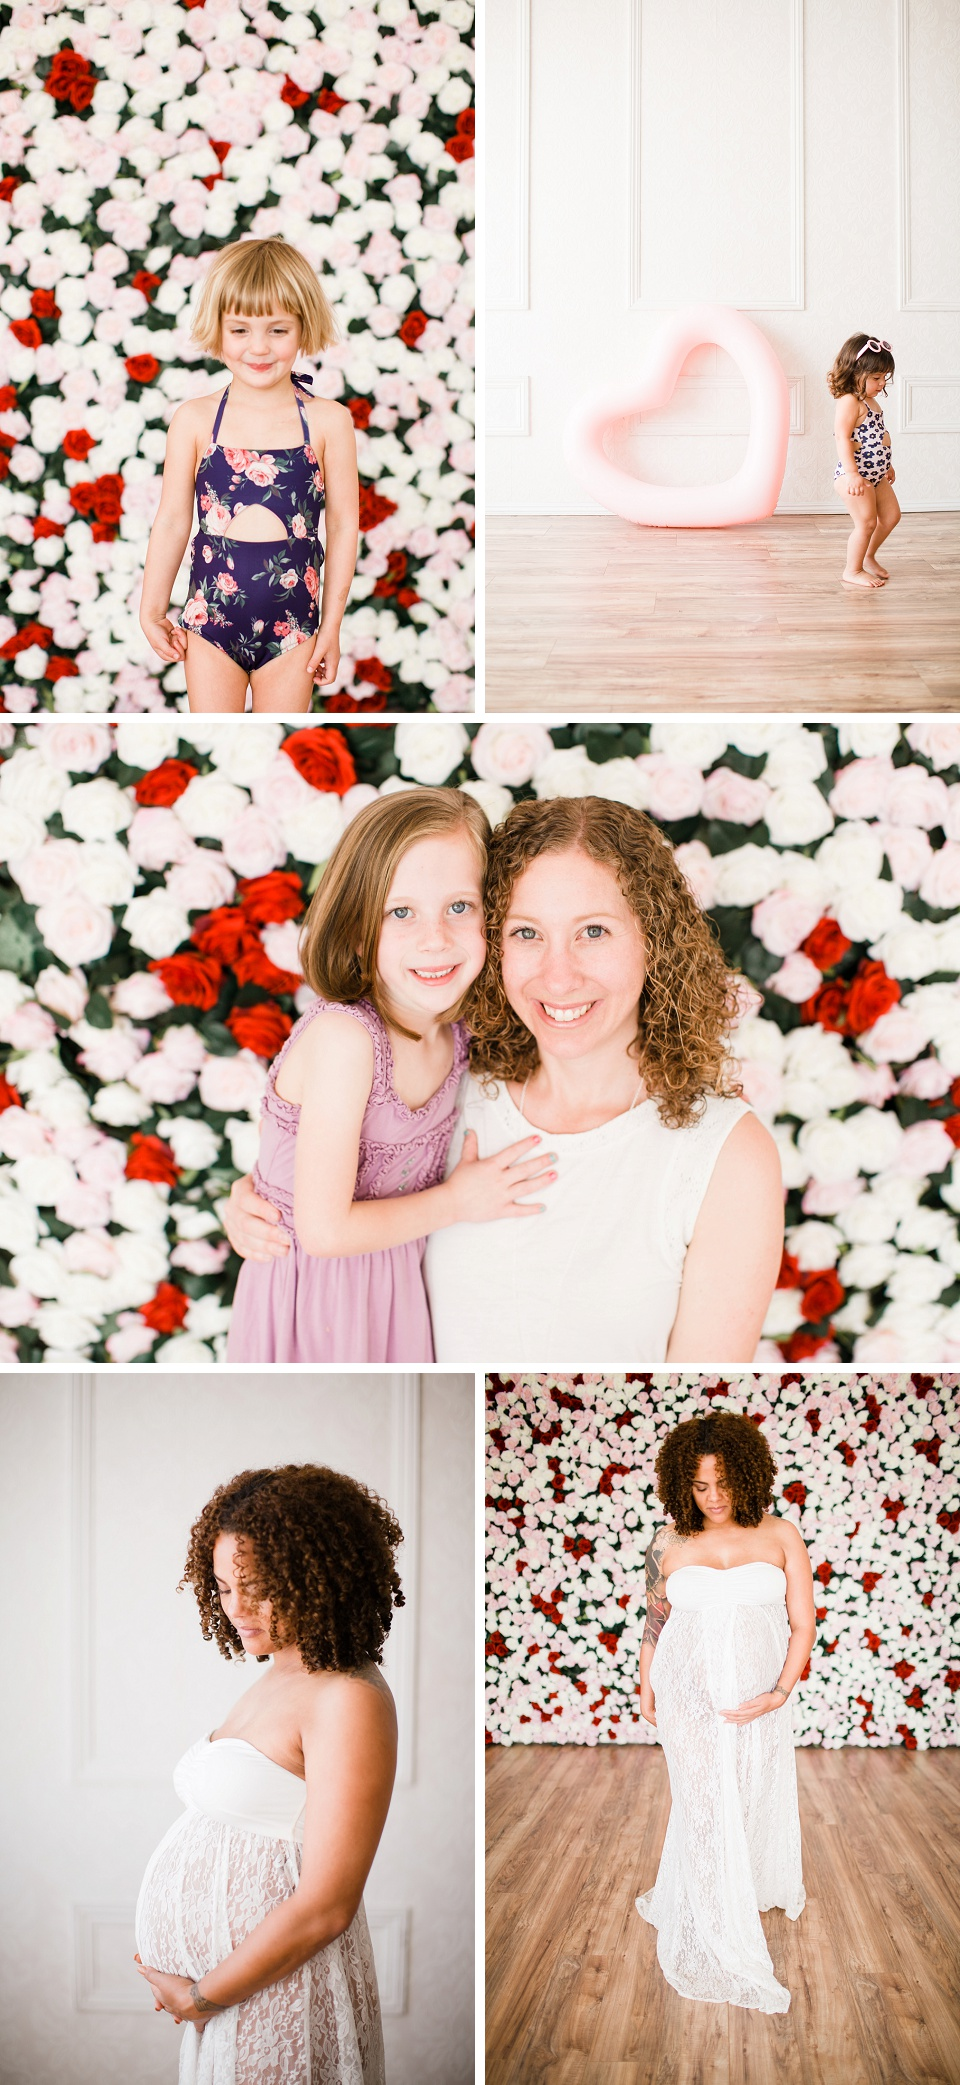 LJP_spring mini sessions_los angeles_mommy & me sessions